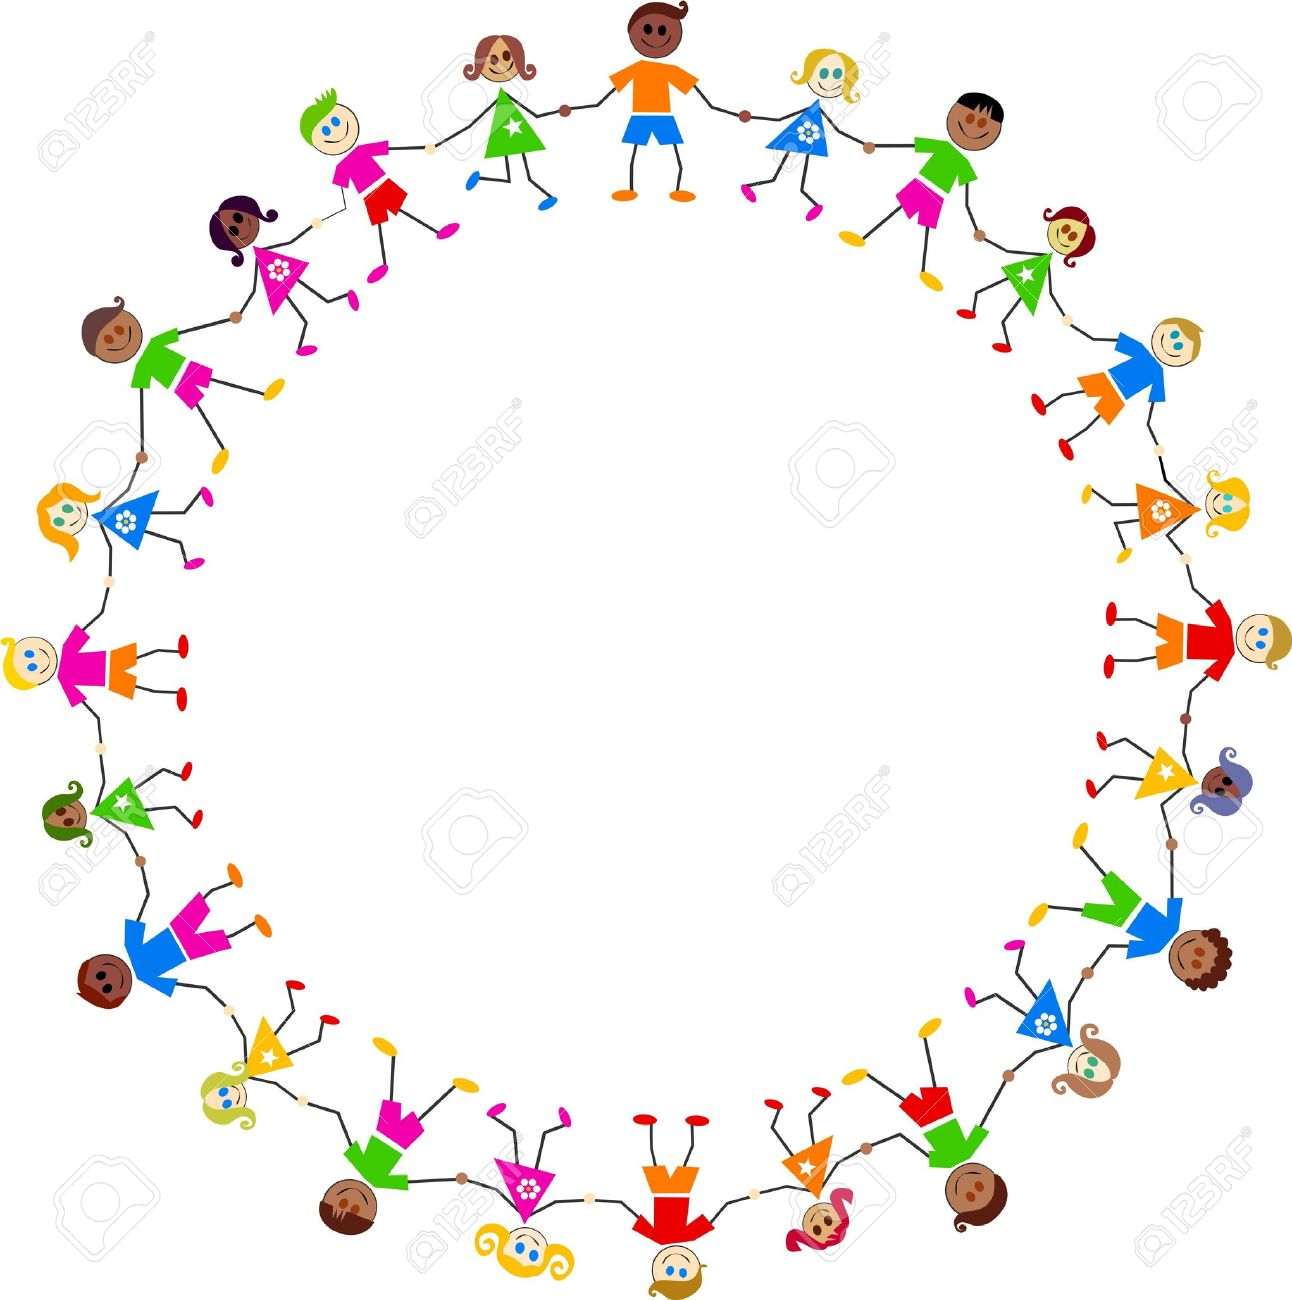 Multiracial hands making a circle clipart free download Holding Hands In A Circle Group with 52+ items free download